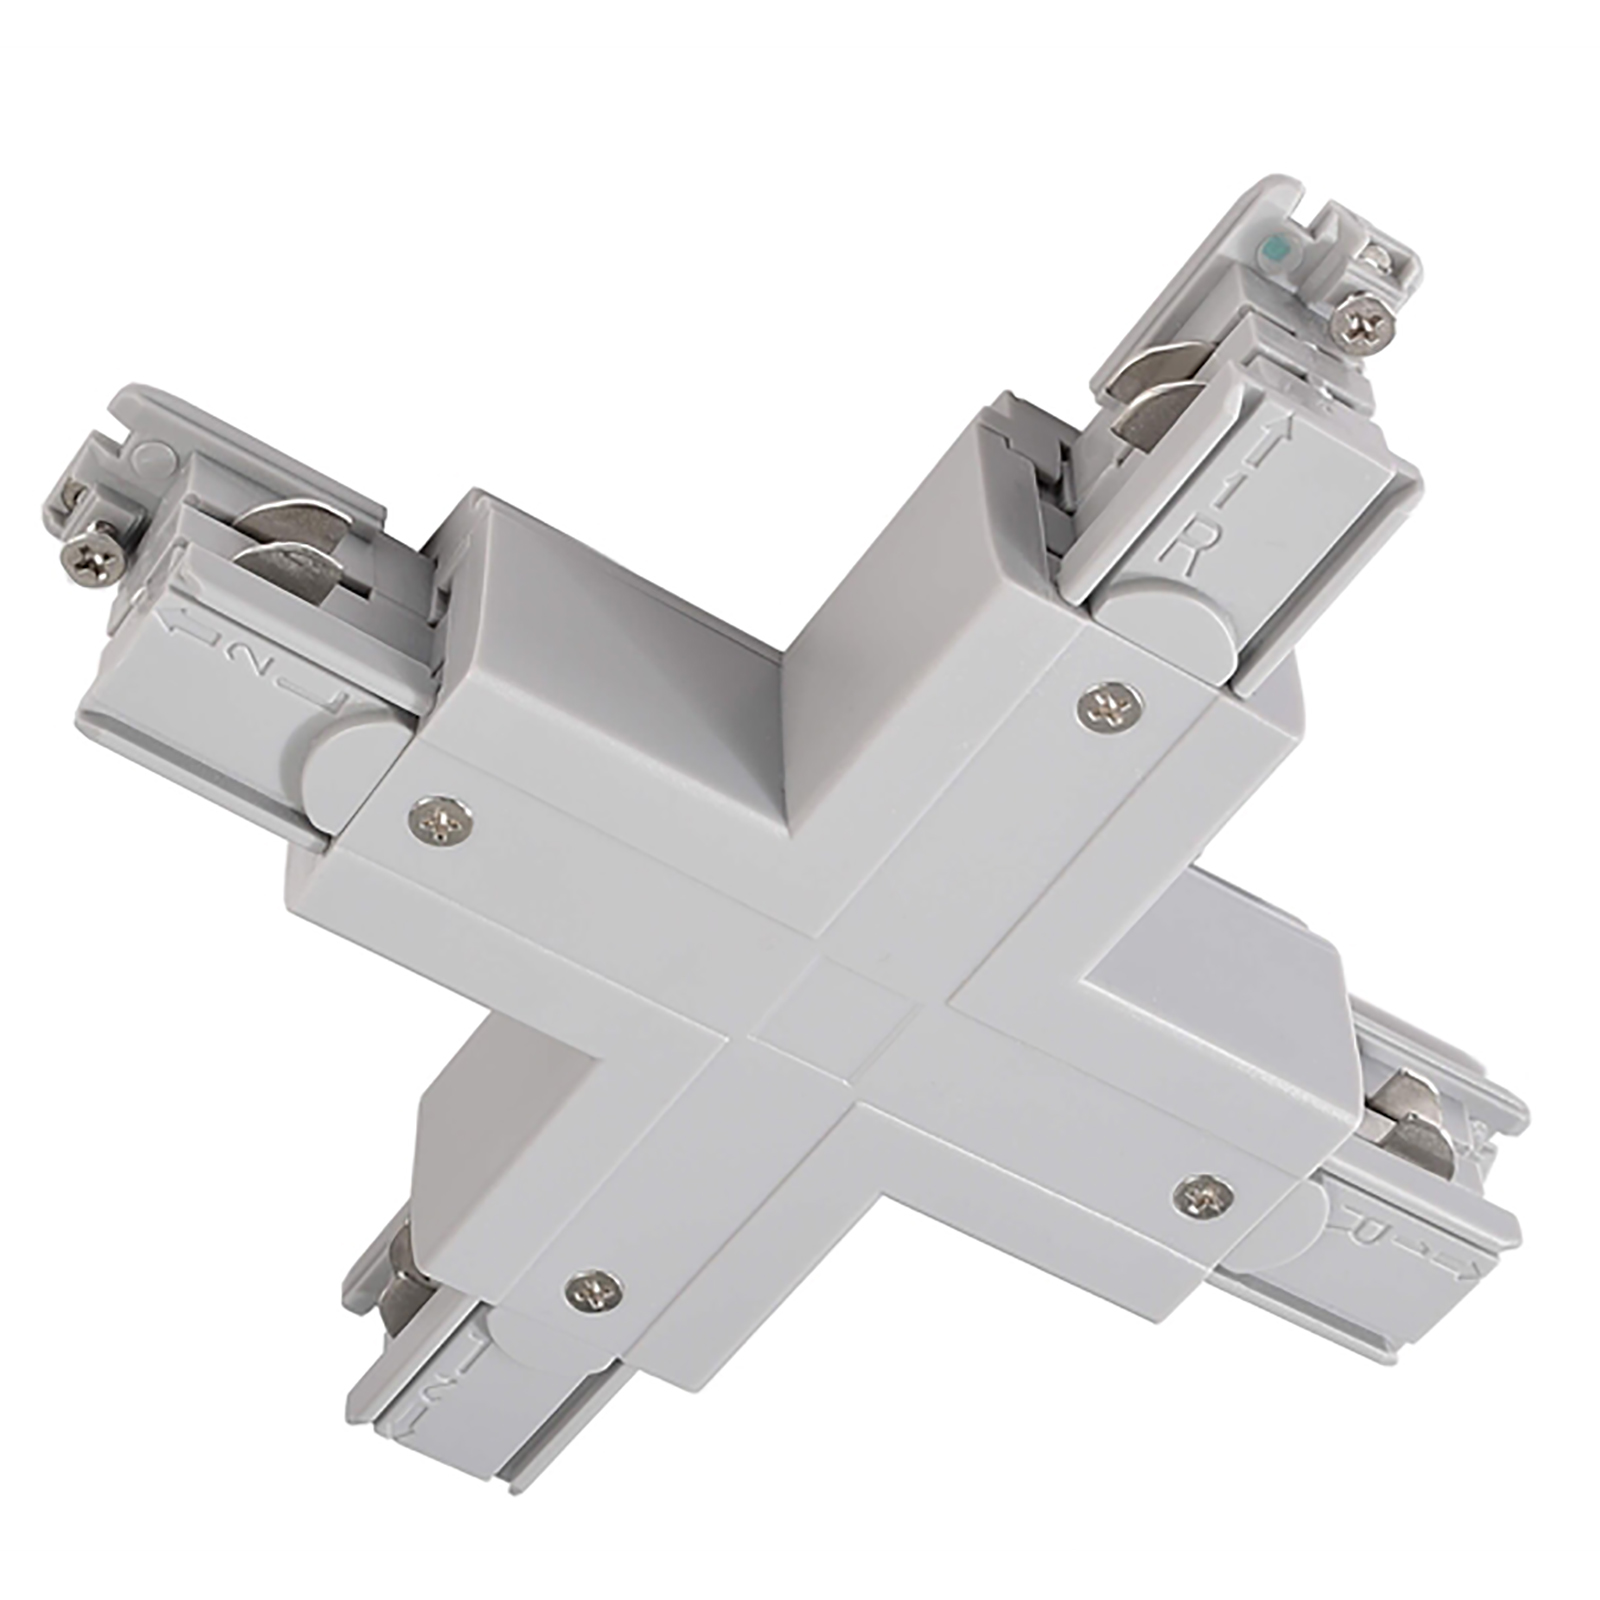 Connector Type X, for binary three-phase lighting system with led track mounting 3-phase